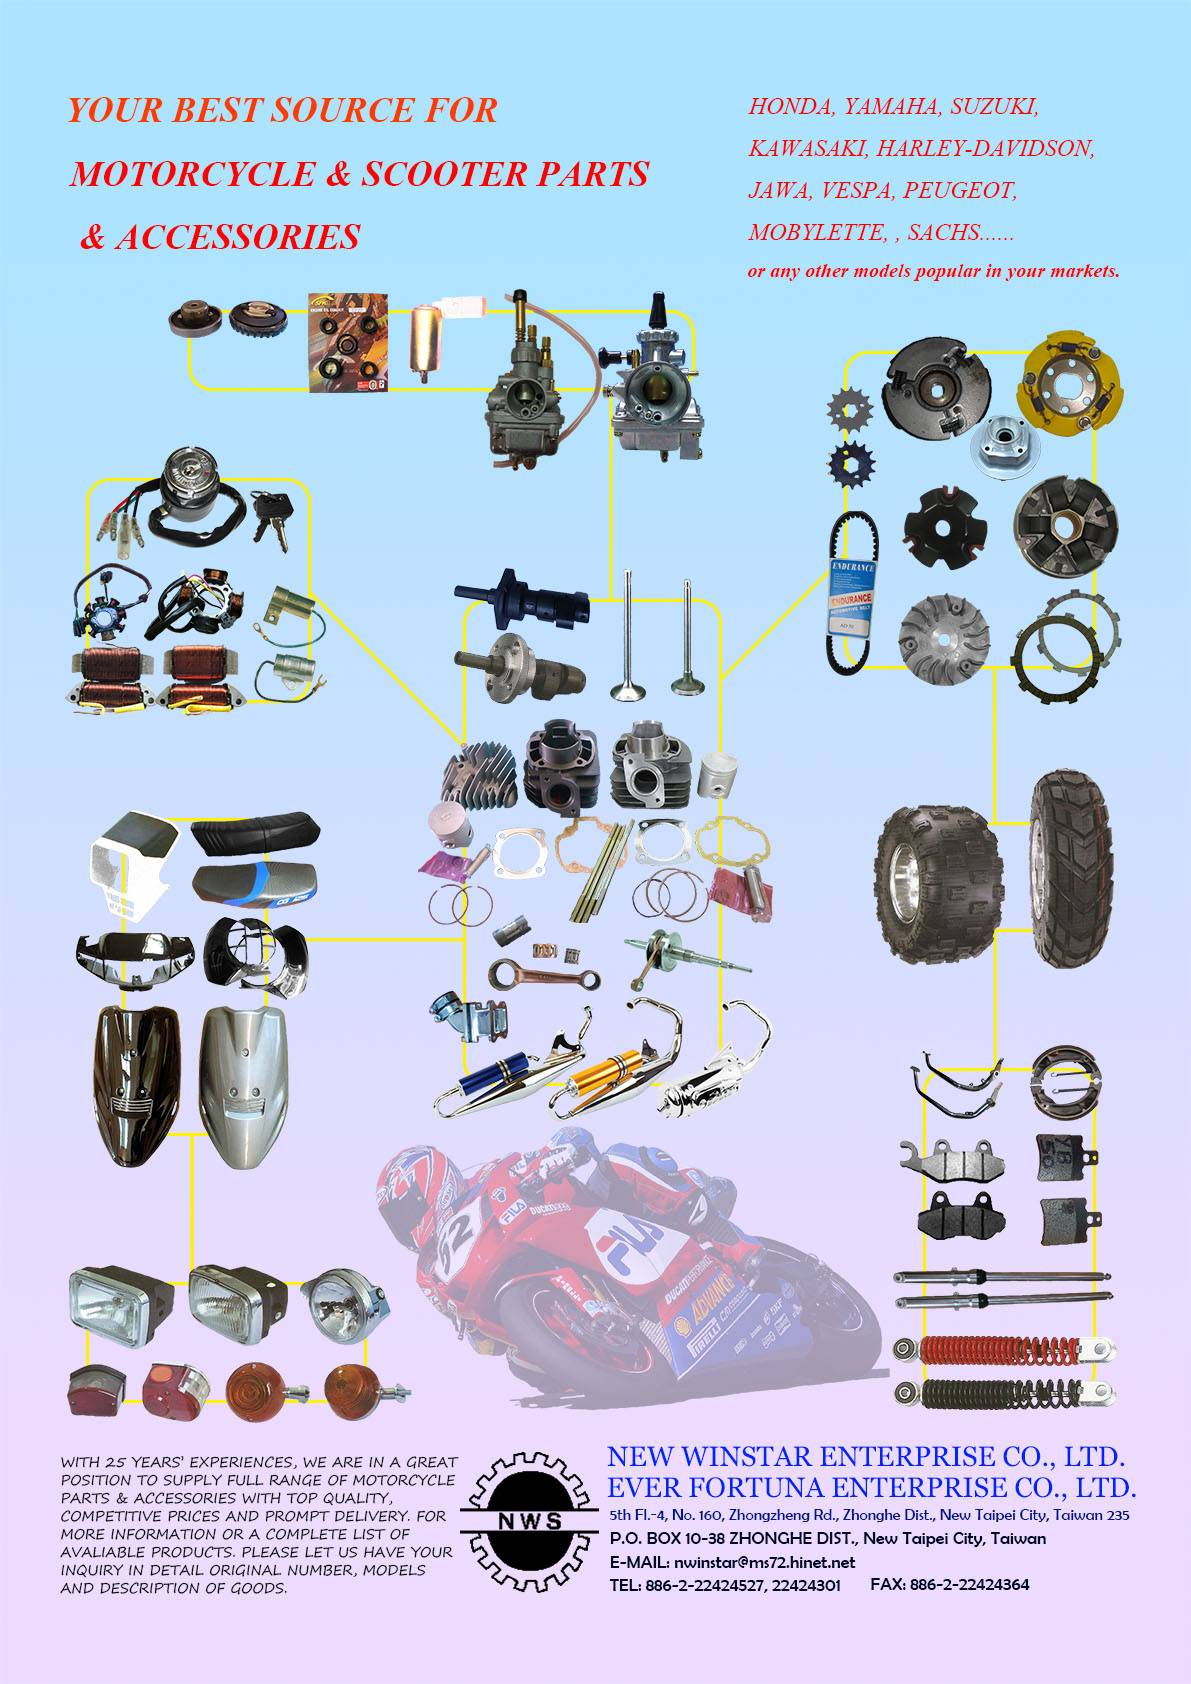 YOUR BEST SOURCE FOR MOTORCYCLE & SCOOTER PARTS & ACCESSORIES